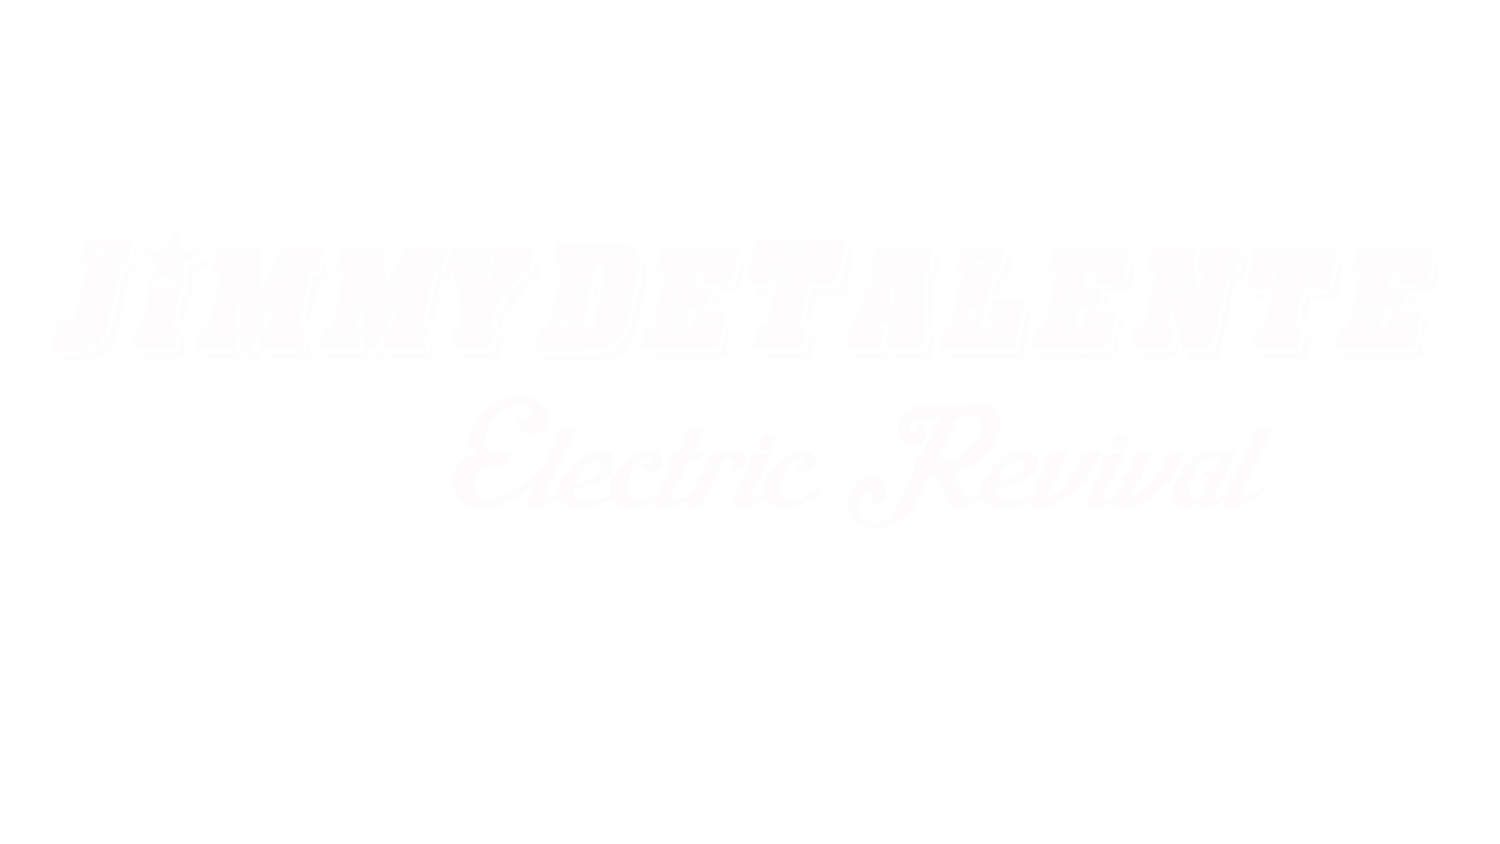 Jimmy DeTalente and the Electric Revival